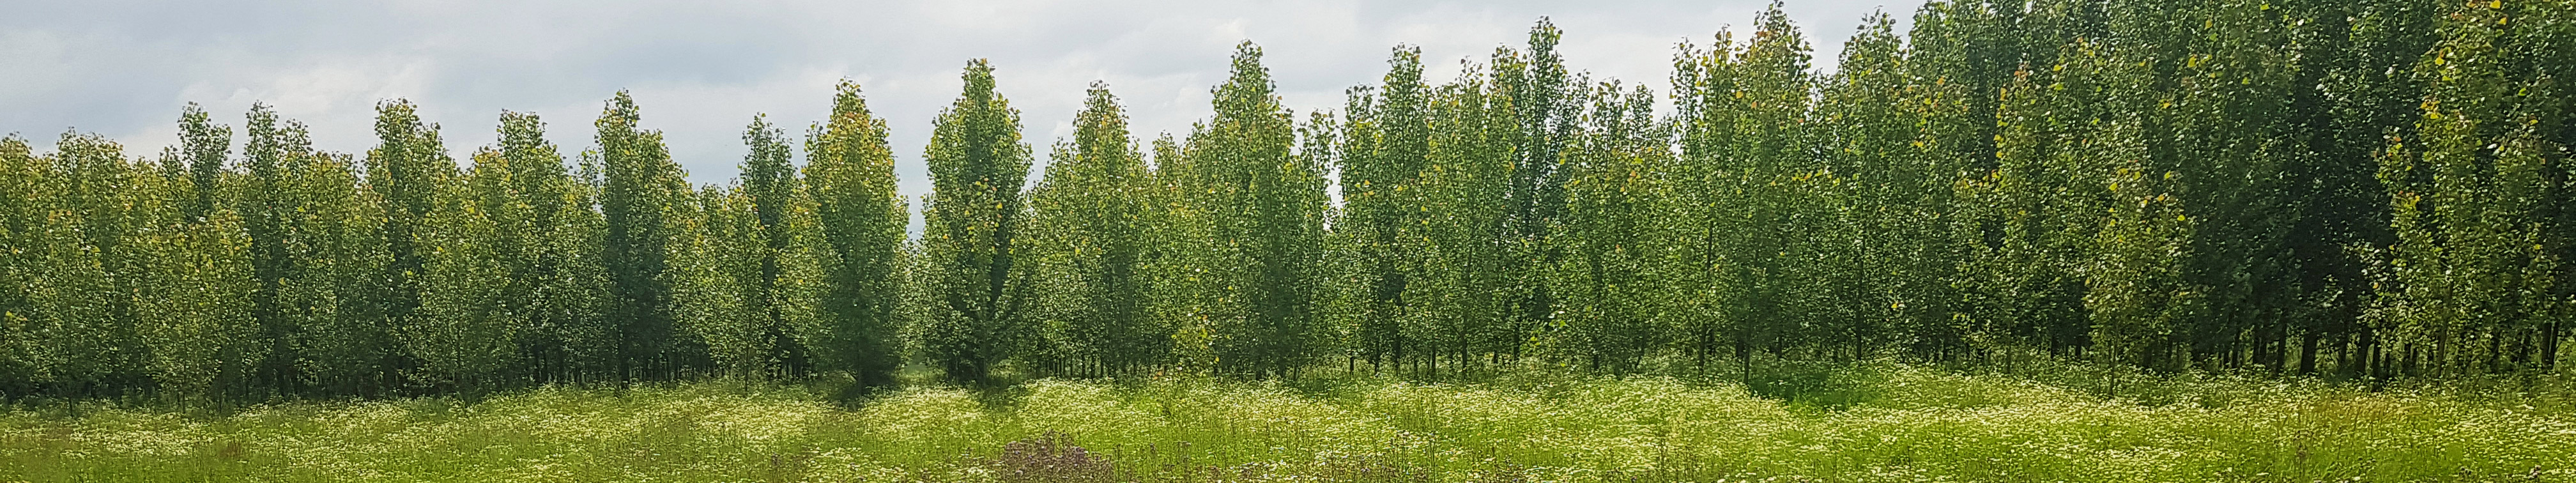 Poplar plantation with a green, flower-rich meadow